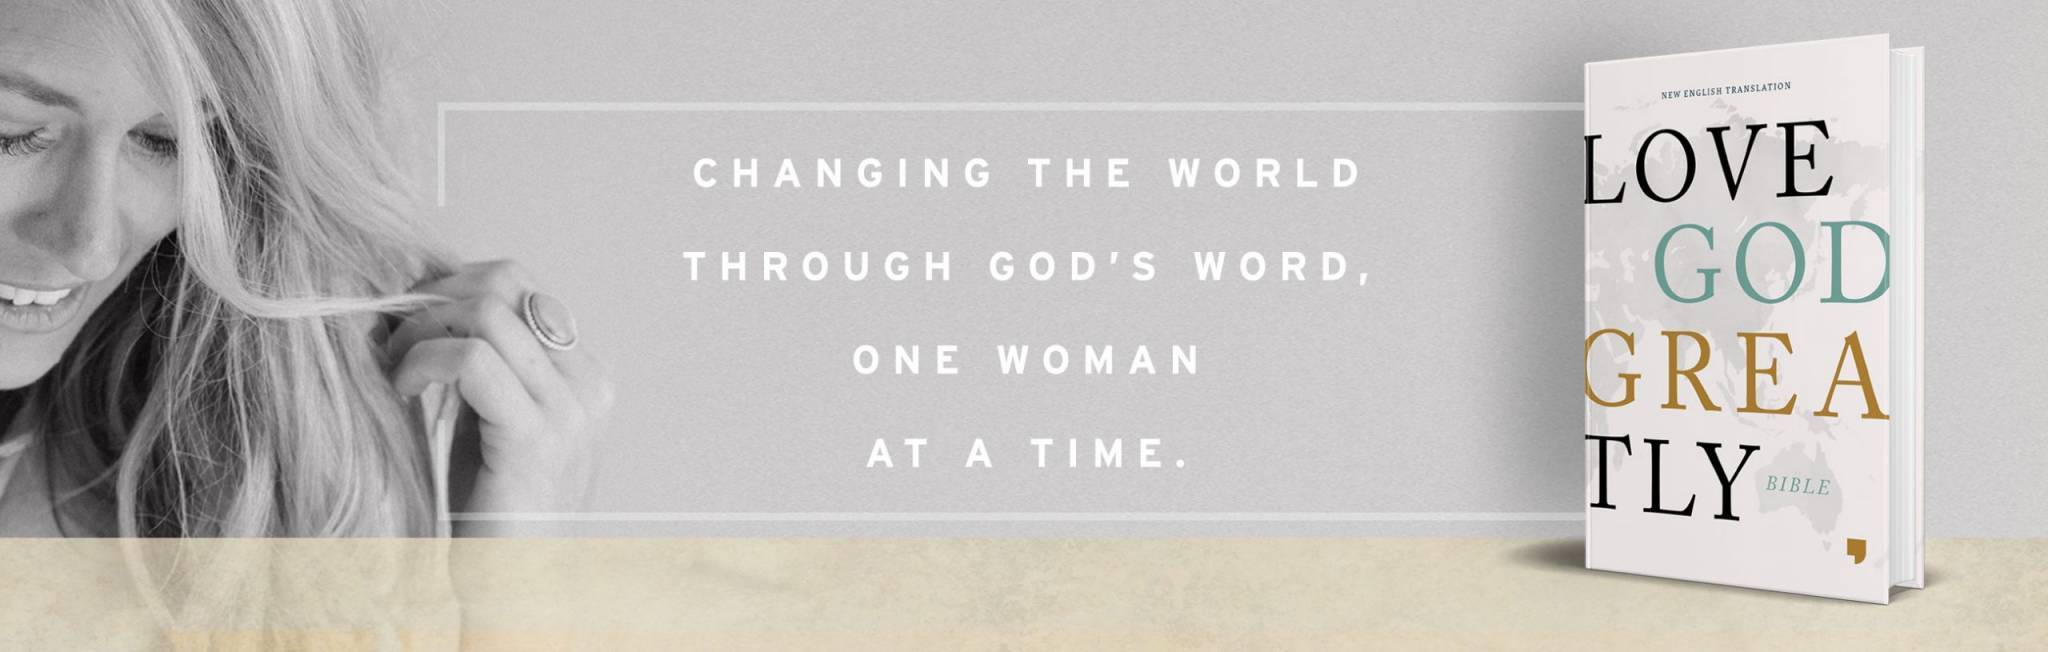 Changing the World Through God's Word, One Woman at a Time